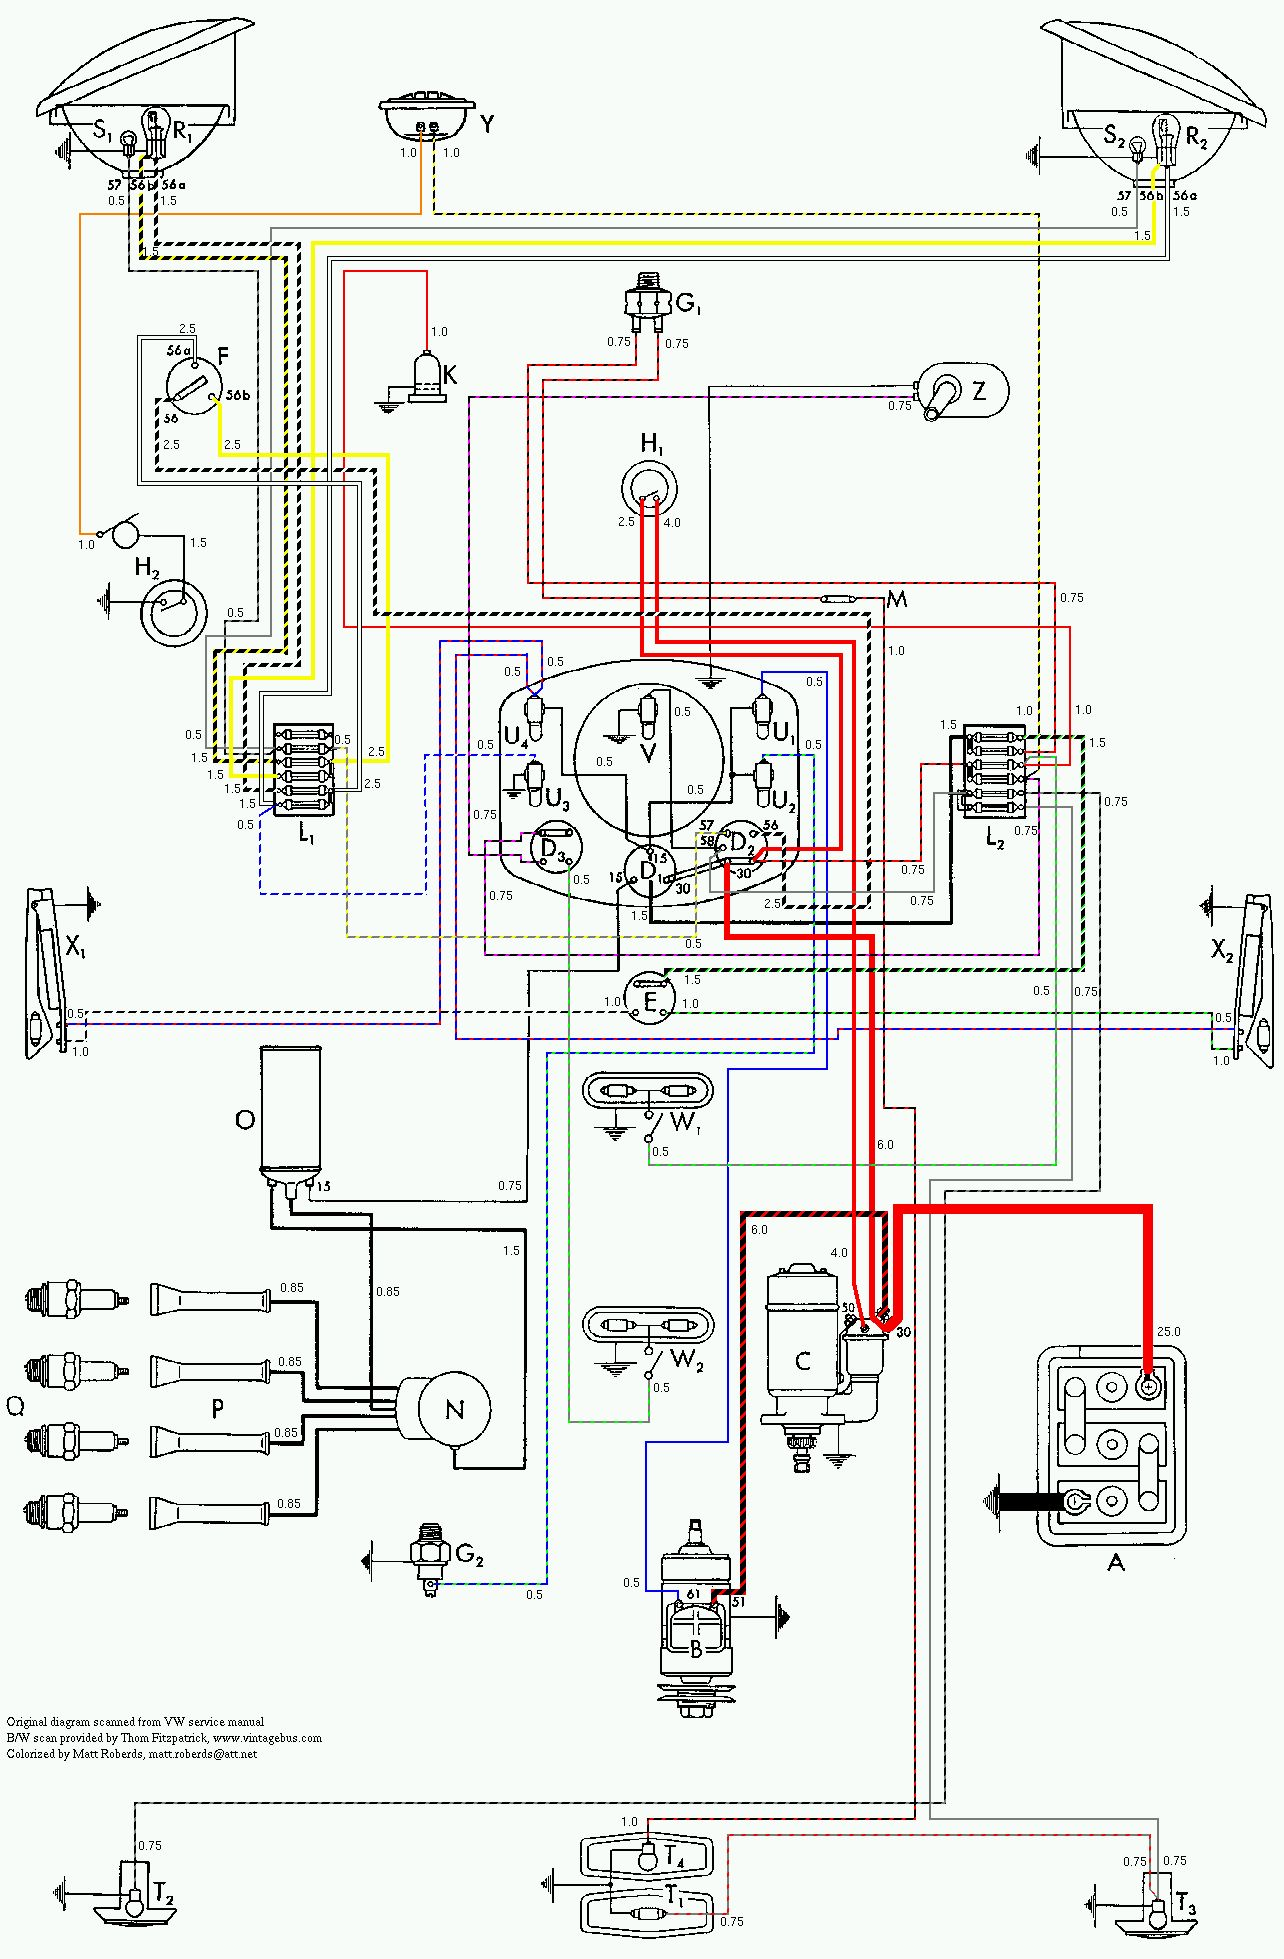 Alternator Wiring Harness 2003 Eurovan Content Resource Of 1968 Ford Diagram Vintagebus Com Vw Bus And Other Diagrams Rh 04 Escape Chevy Truck